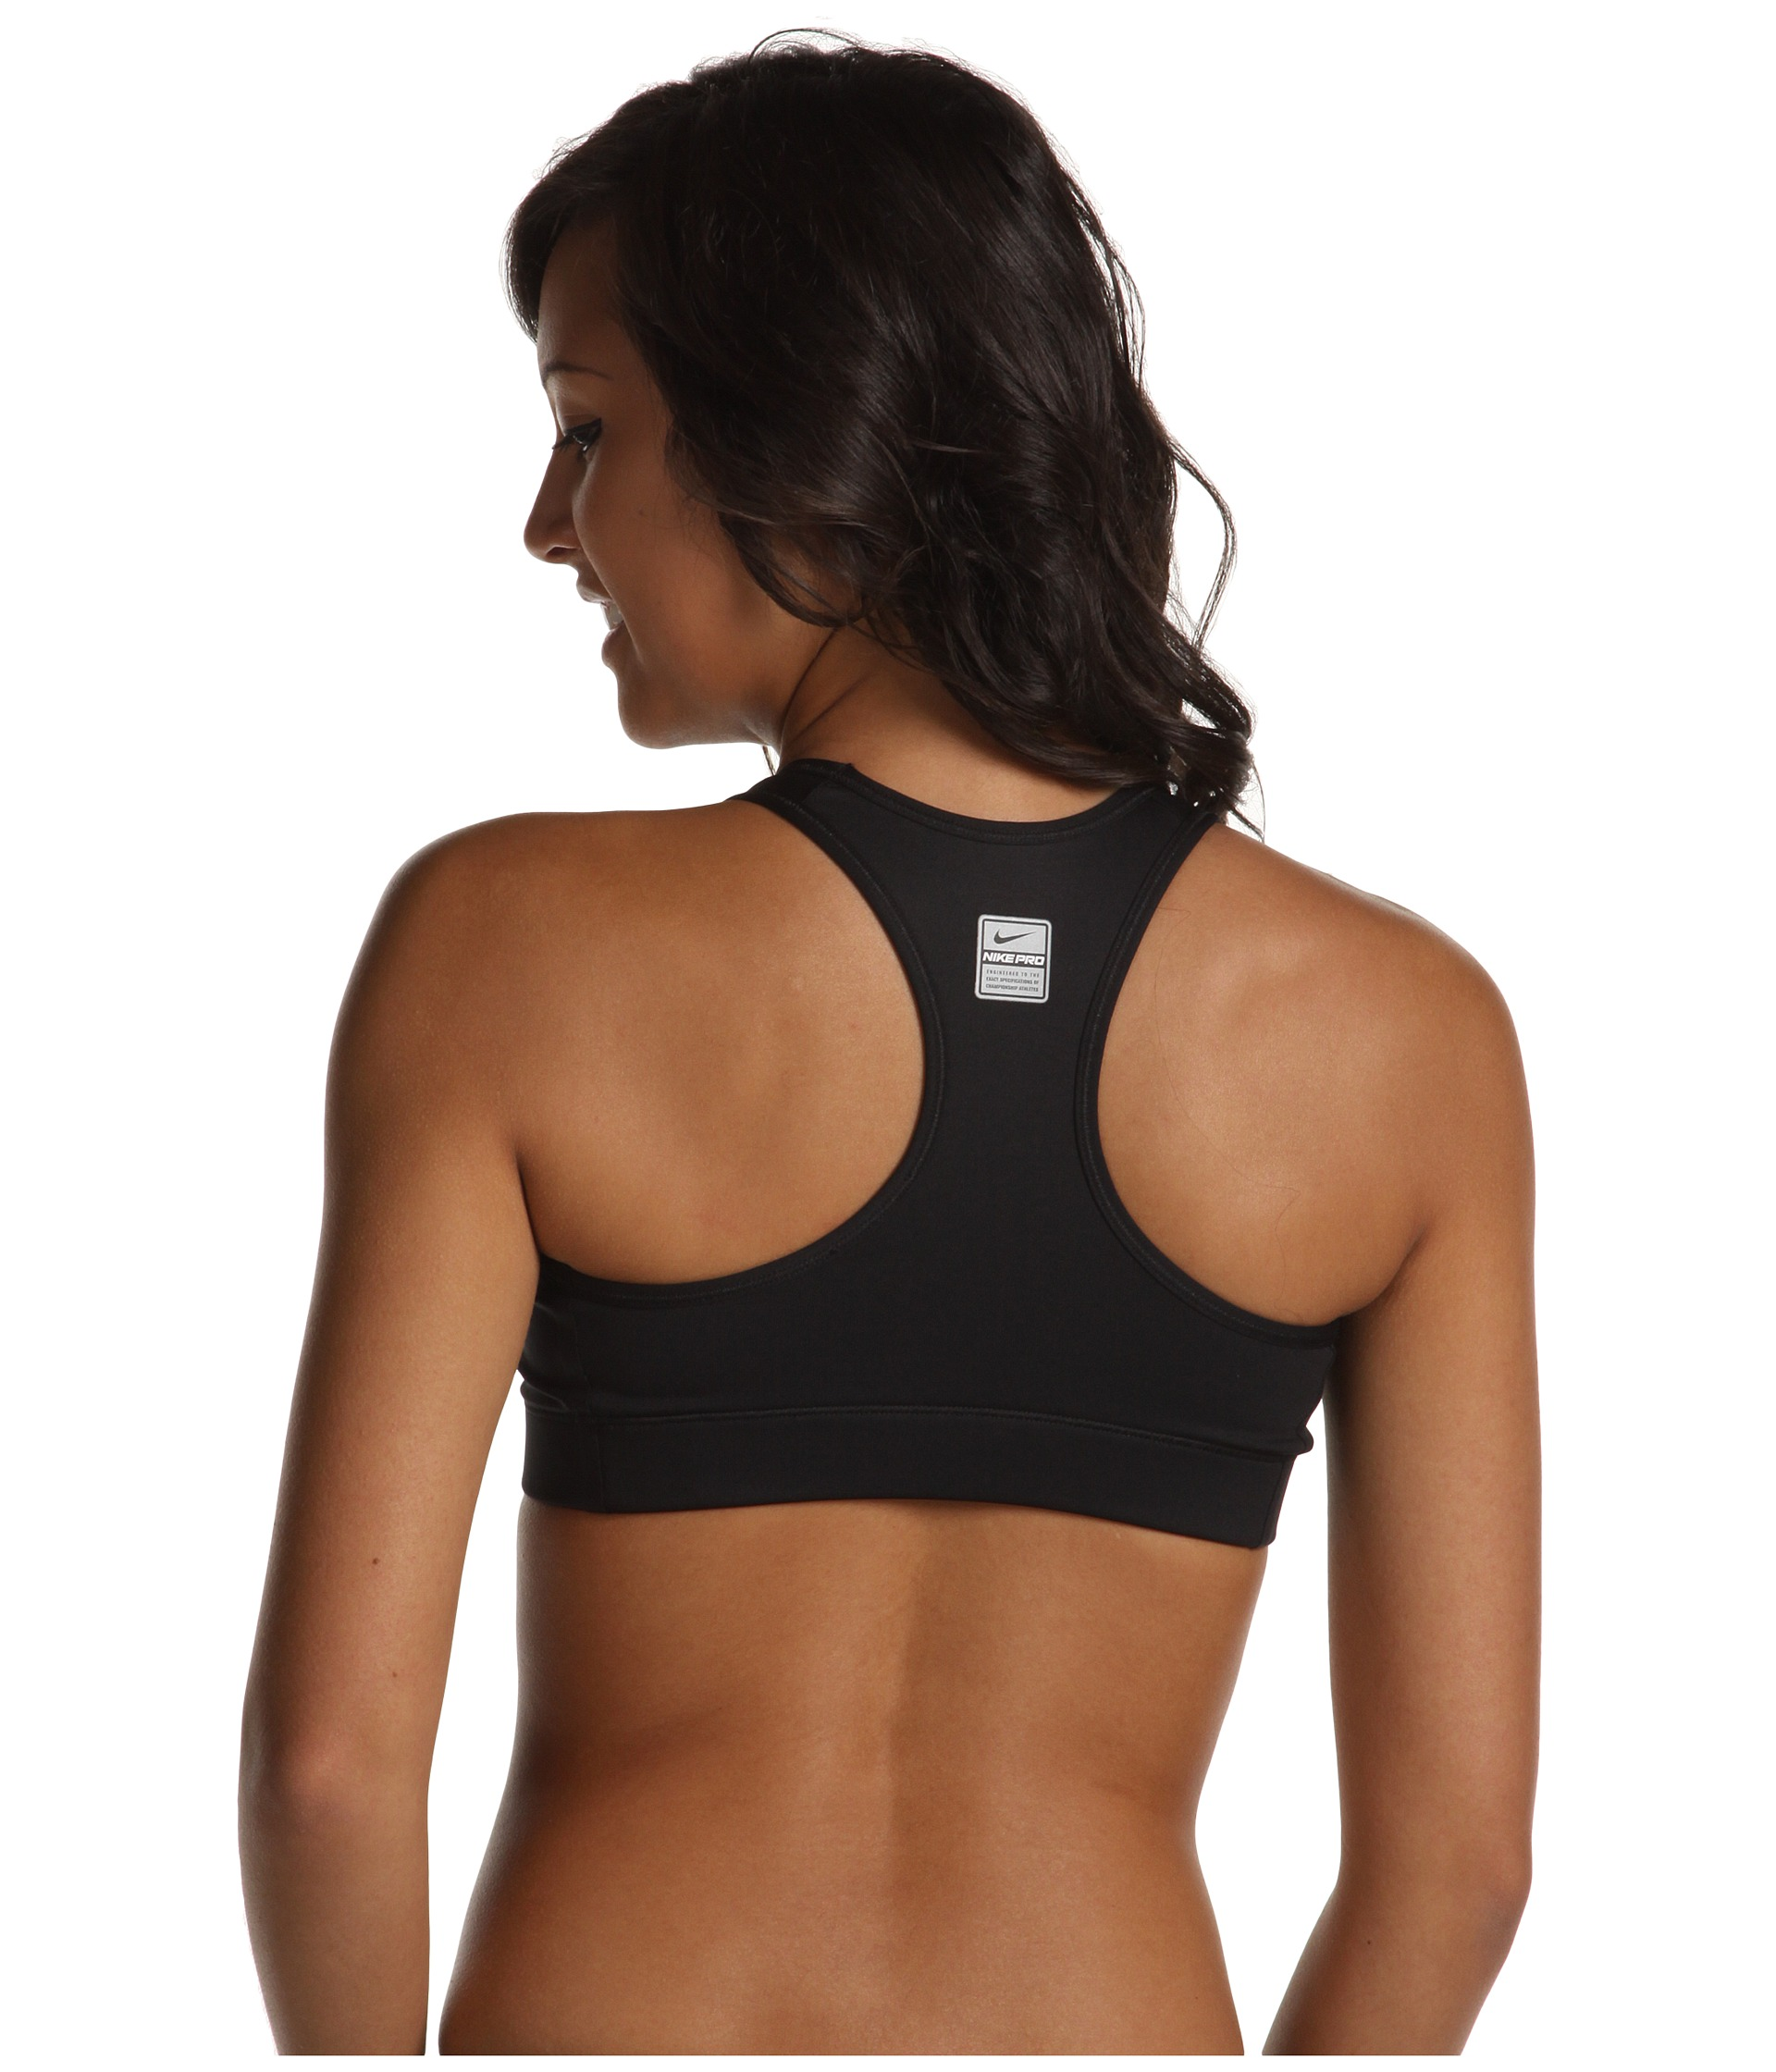 Named one of Runner's World's best sports bras for DD and larger, the Panache underwire bra is designed to support your breasts from all angles individually, instead of smushing them flat. Panache uses 3-D motion and biomechanical technology to reduce bounce by 83%.